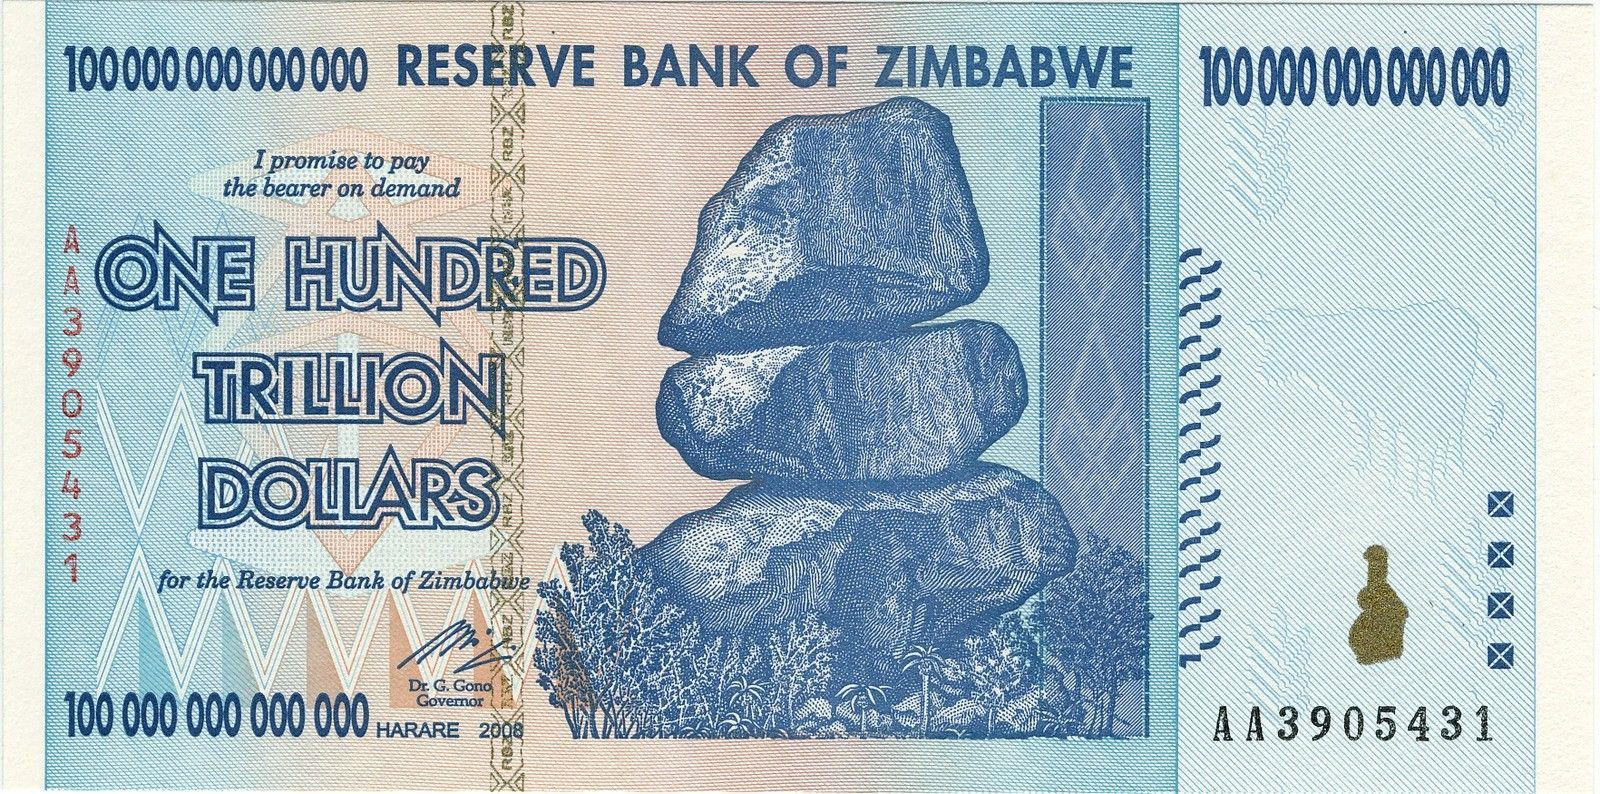 Polished Juliets like new, price? - Zimbabwe_$100_trillion_2009_Obverse.jpg